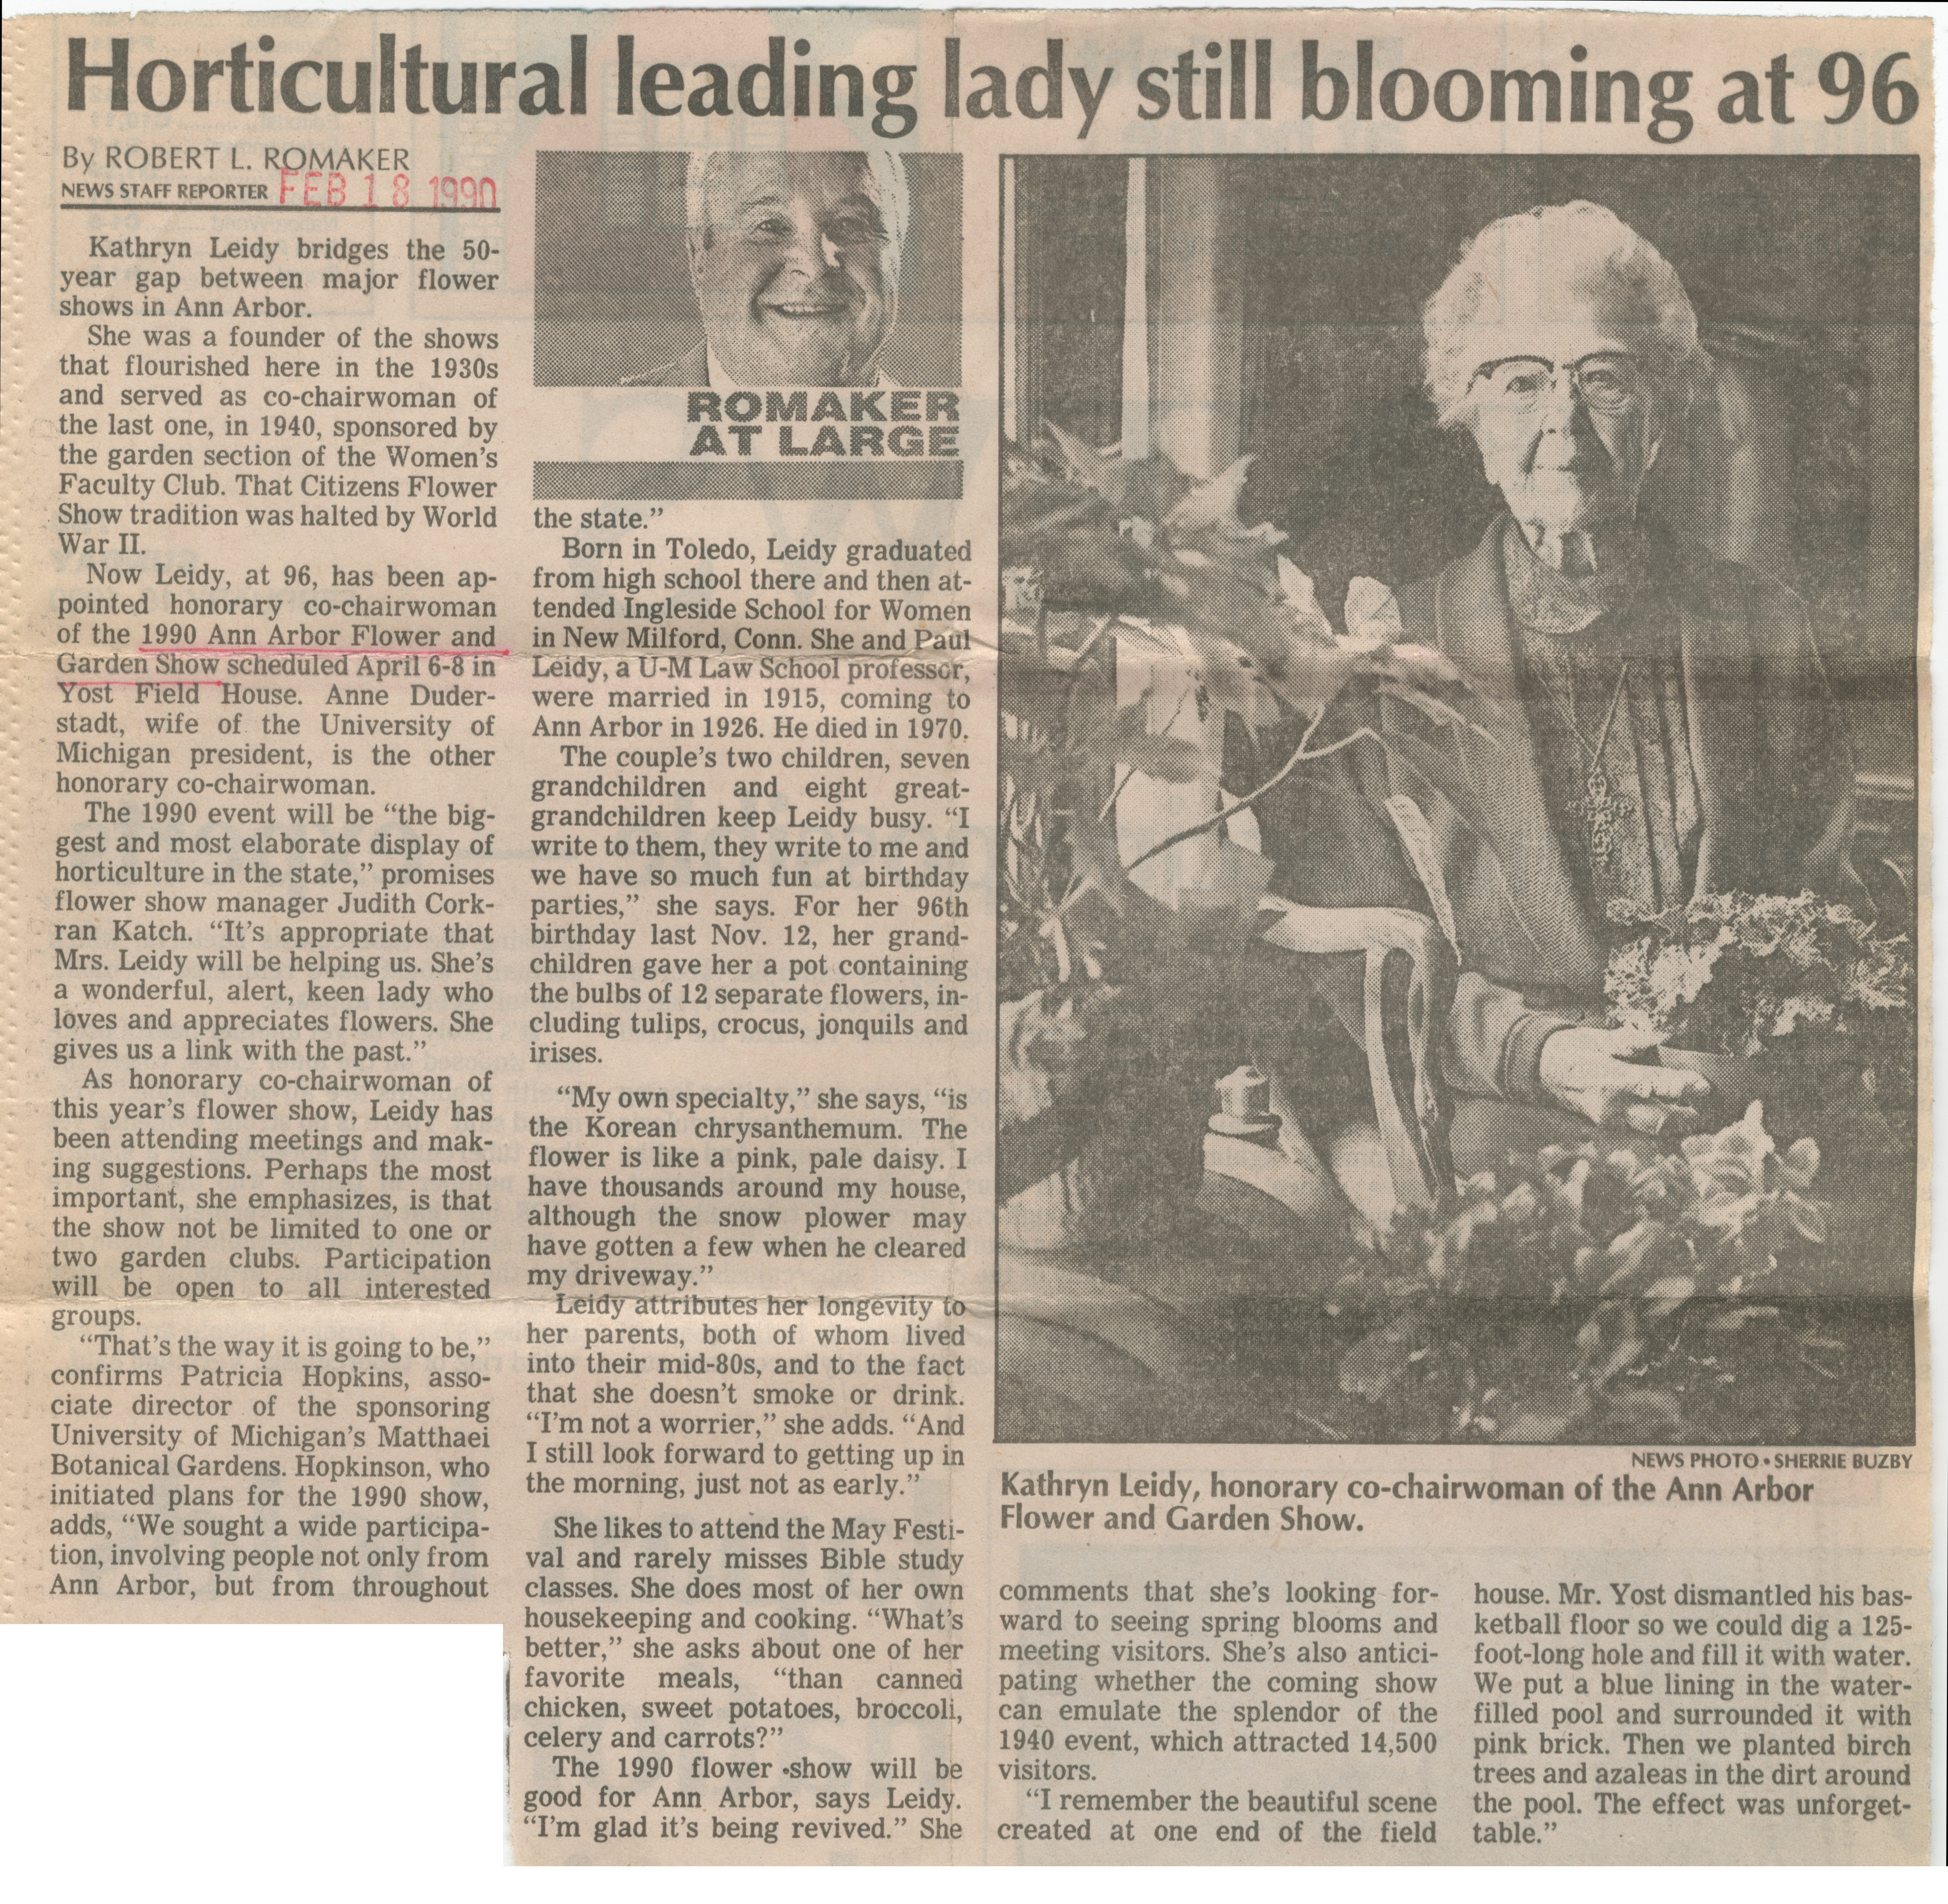 Horticultural Leading Lady Still Blooming at 96 image